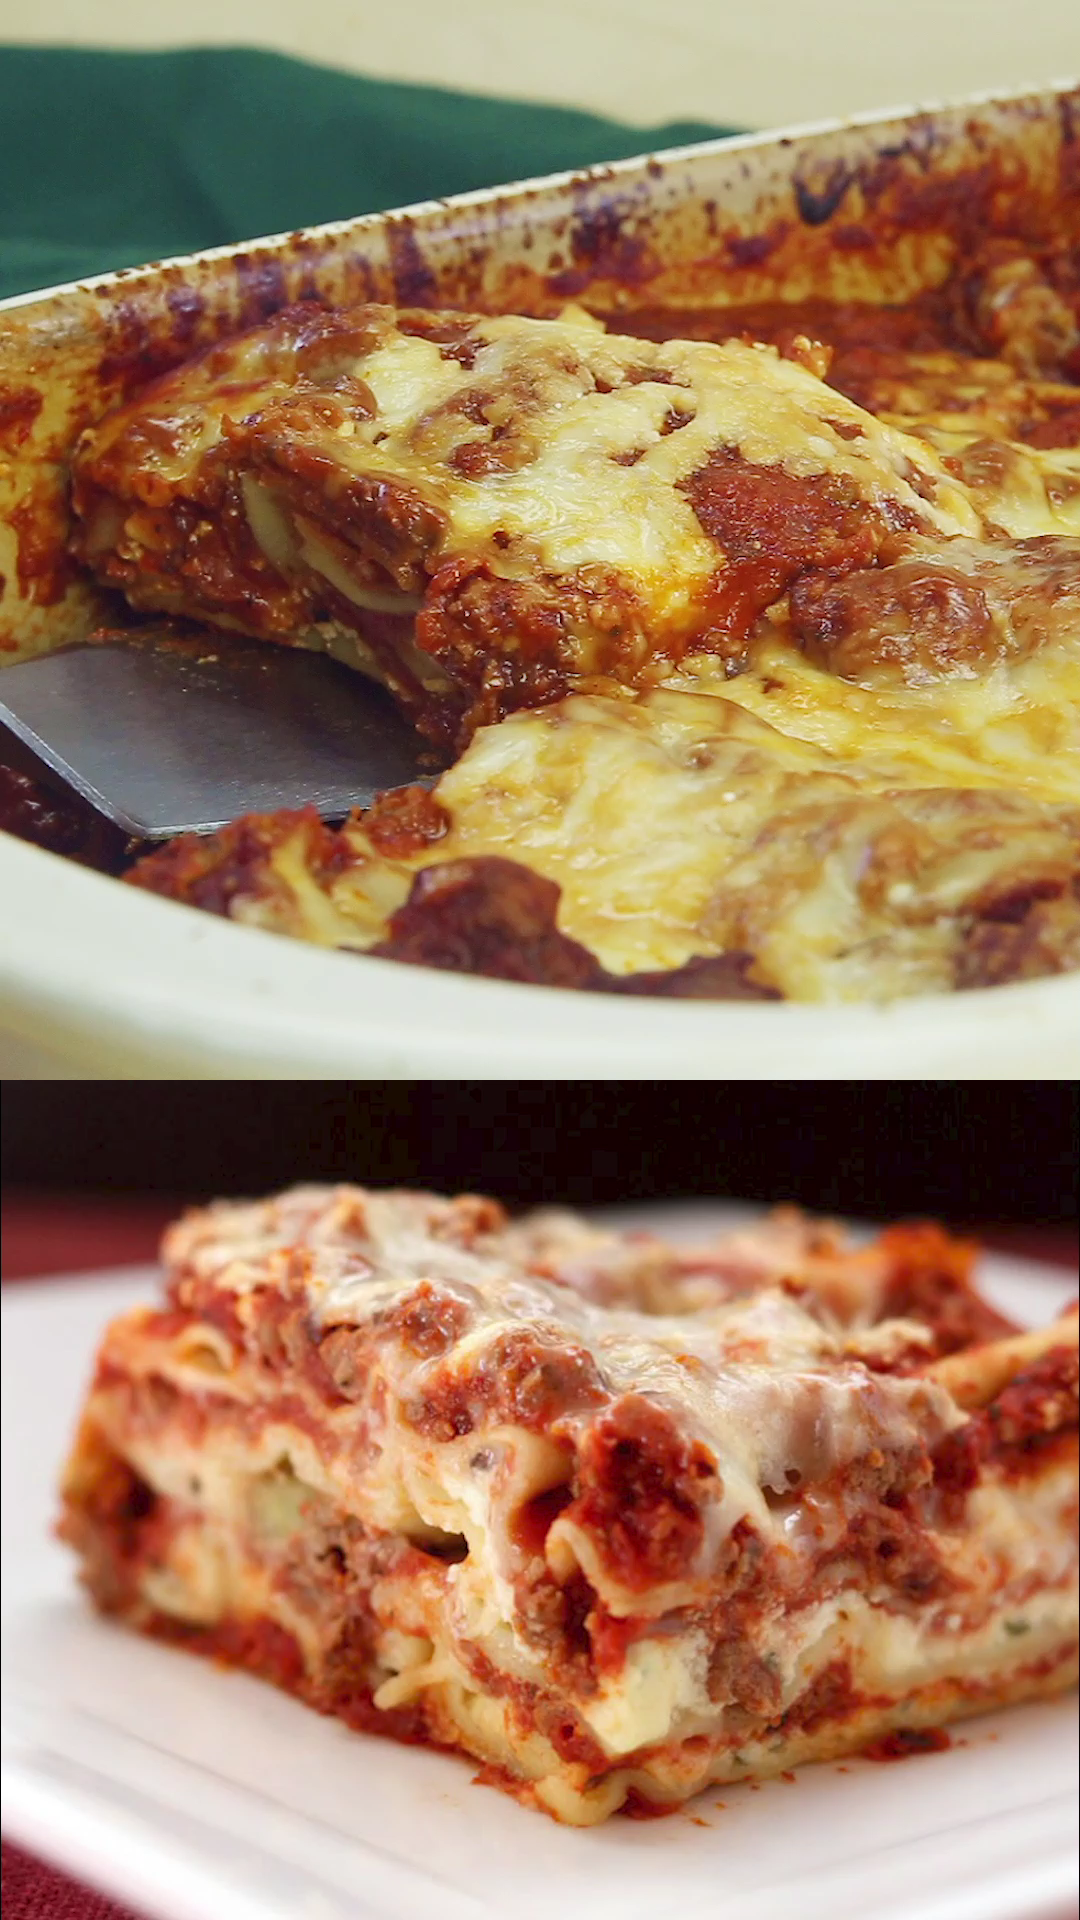 World's Best Lasagna - the ultimate recipe for classic Italian comfort food with layers of noodles, meat sauce, and cheese. Sunday dinner is extra special when you make this traditional pasta dish. #lasagna #comfortfood